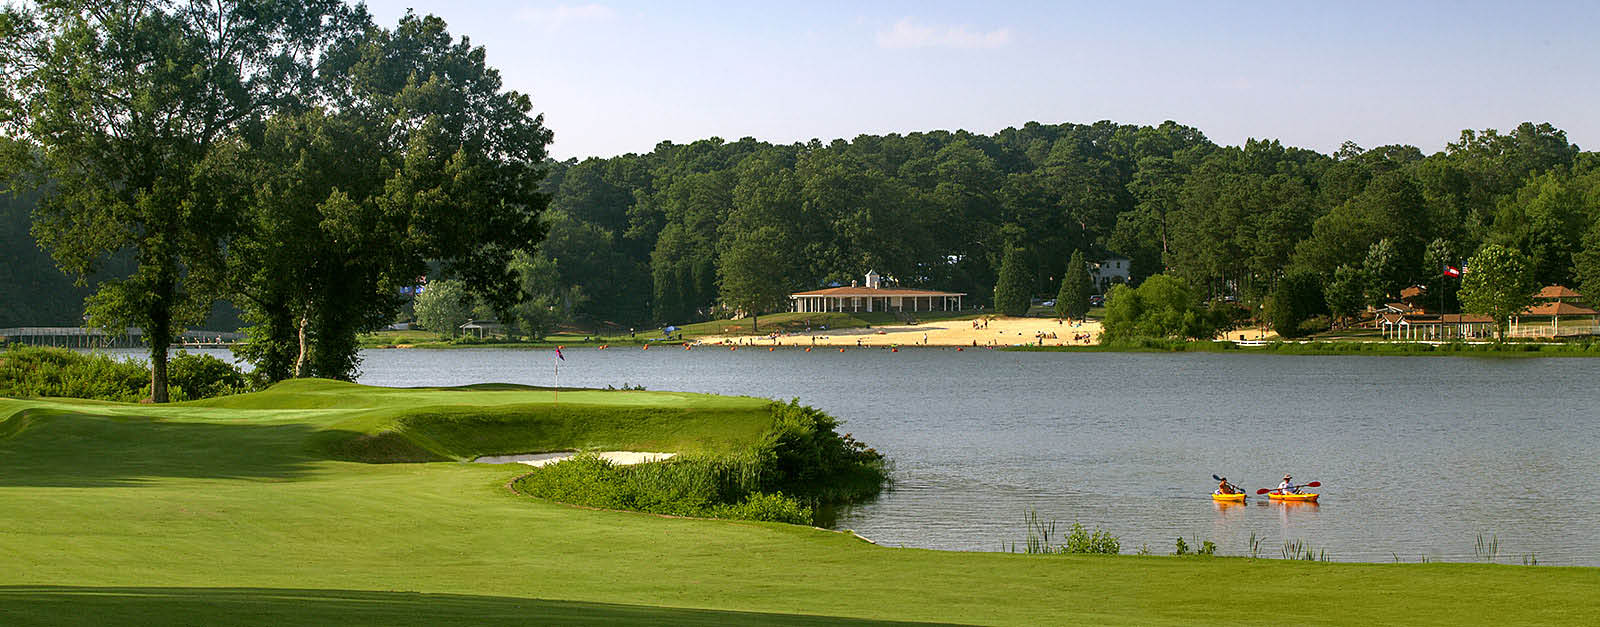 Scenic golf course with the Lake Acworth beach directly across